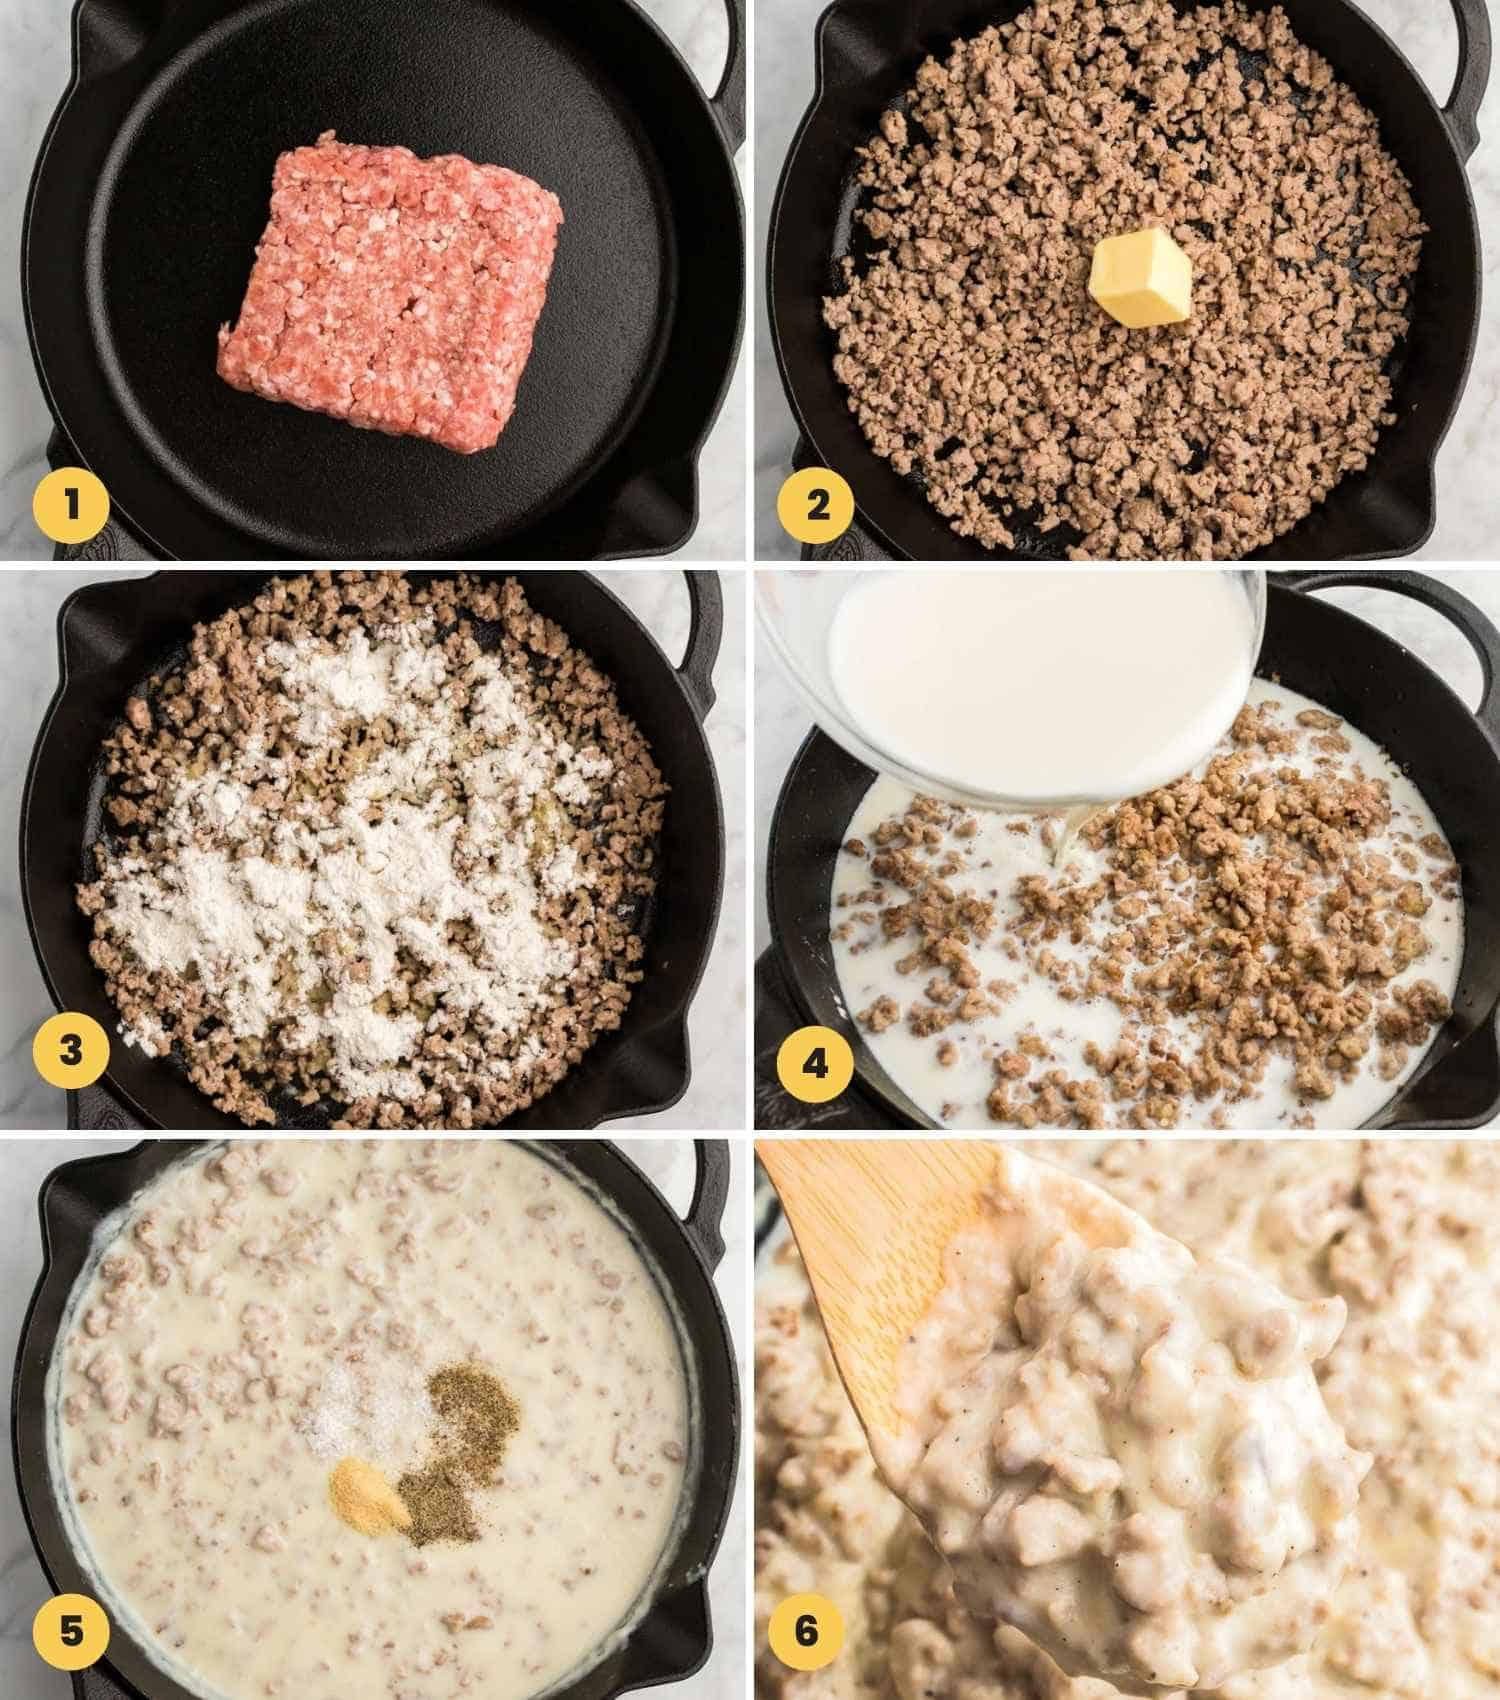 A collage with 6 images showing how to make sausage gravy